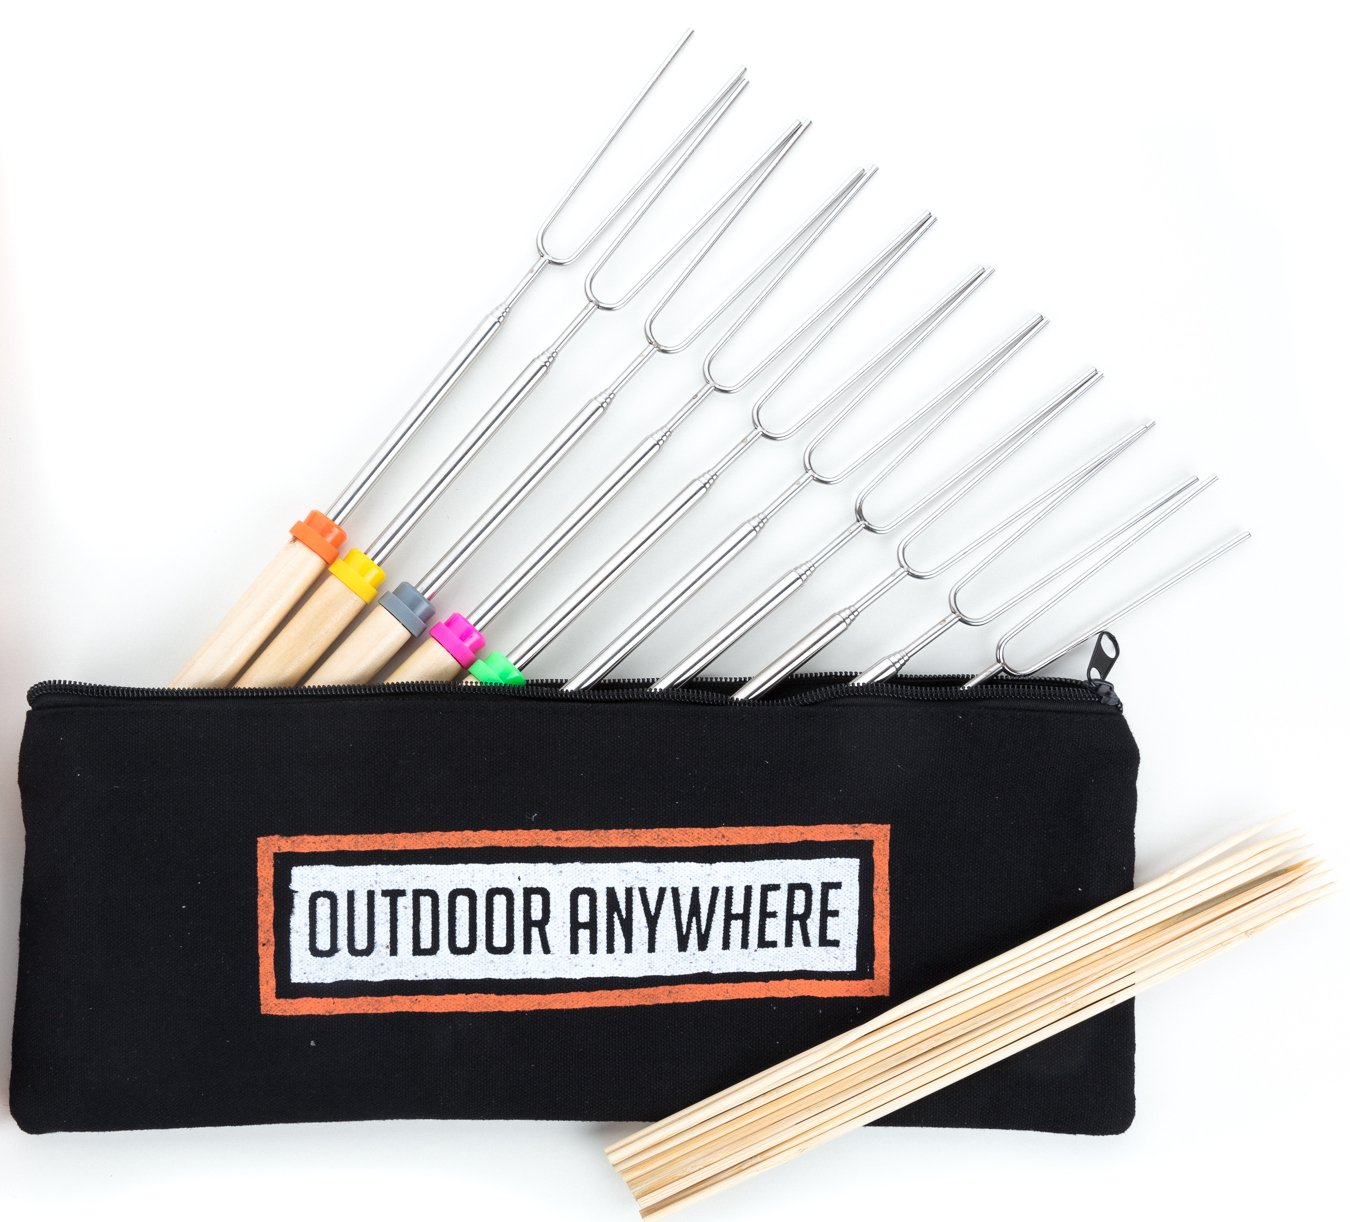 Marshmallow Roasting Sticks: Smores Skewers & Telescoping and Rotating Hotdog Fork Gift Set - 32 Inch - Camping Cookware Accessories for Kids - 10 Stainless Steel Forks - 10 Bamboo Sticks OUTDOOR ANYWHERE